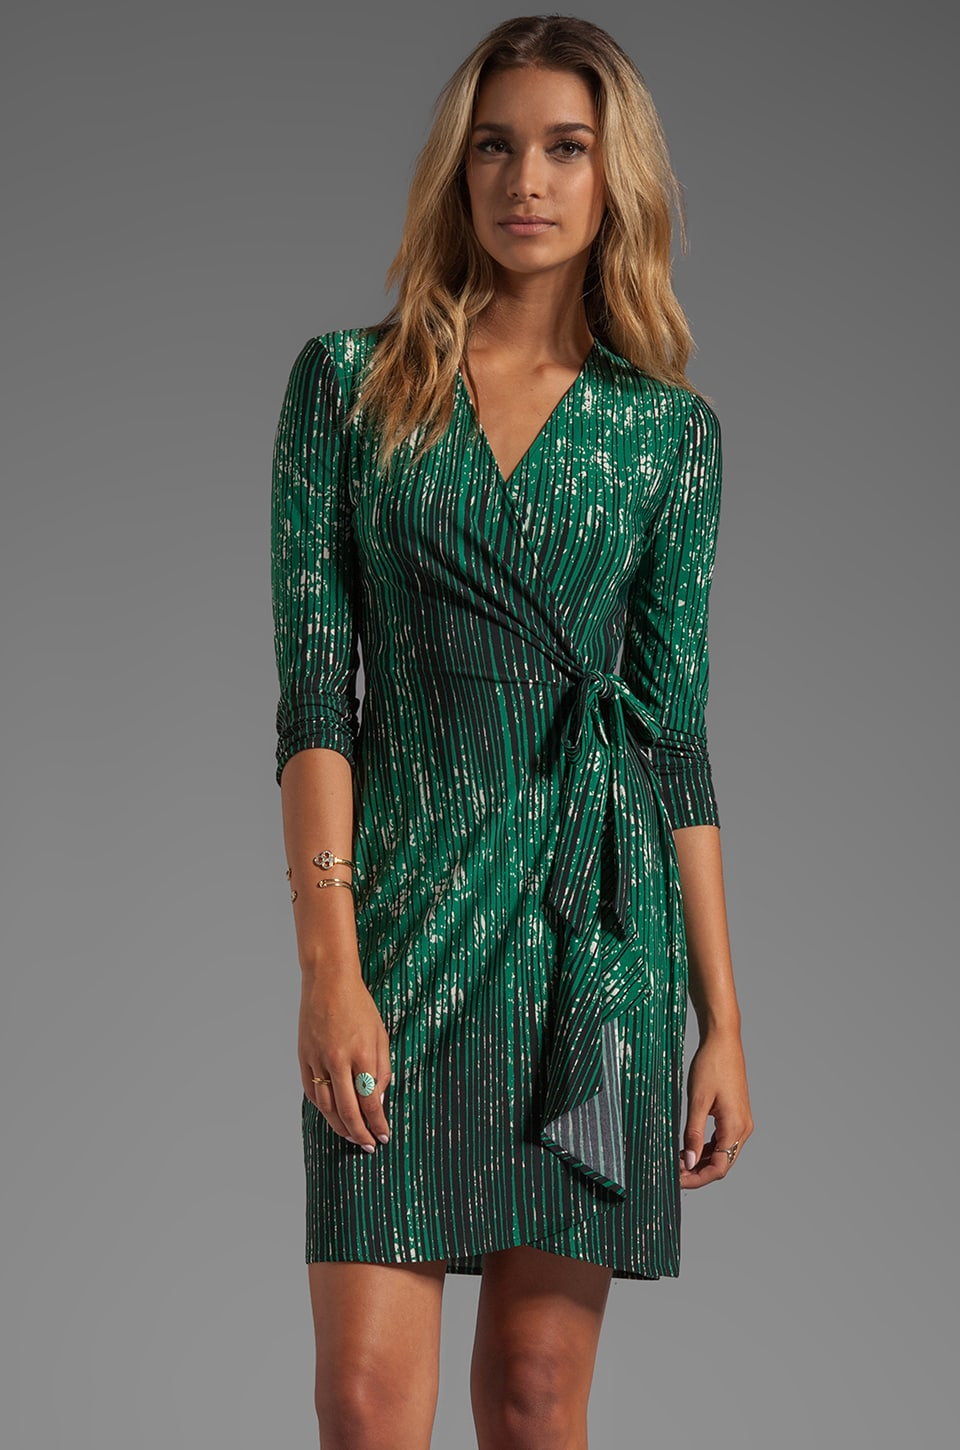 BCBGMAXAZRIA Adele Wrap Dress in Amazon Green Combo